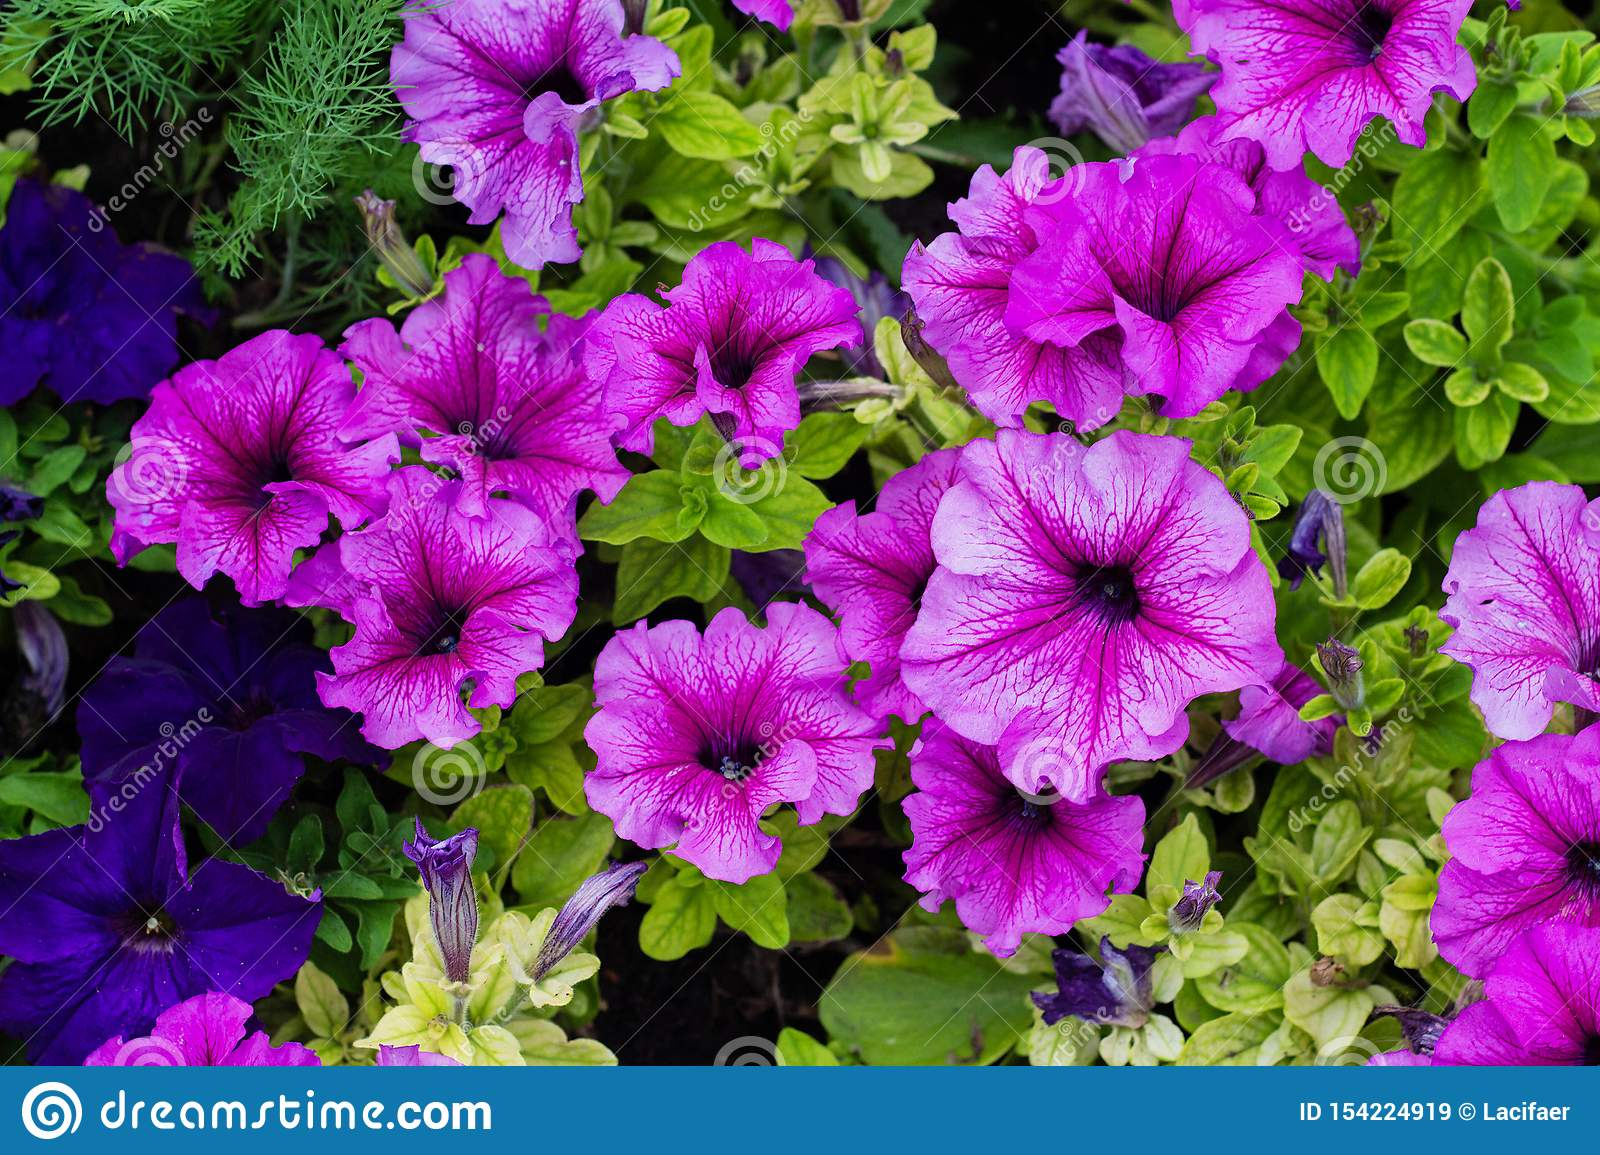 Flower Bed With Purple Petunias Close Up Petunia Flowers Bloom Petunia Blossom Stock Image Image Of Bloom Floral 154224919